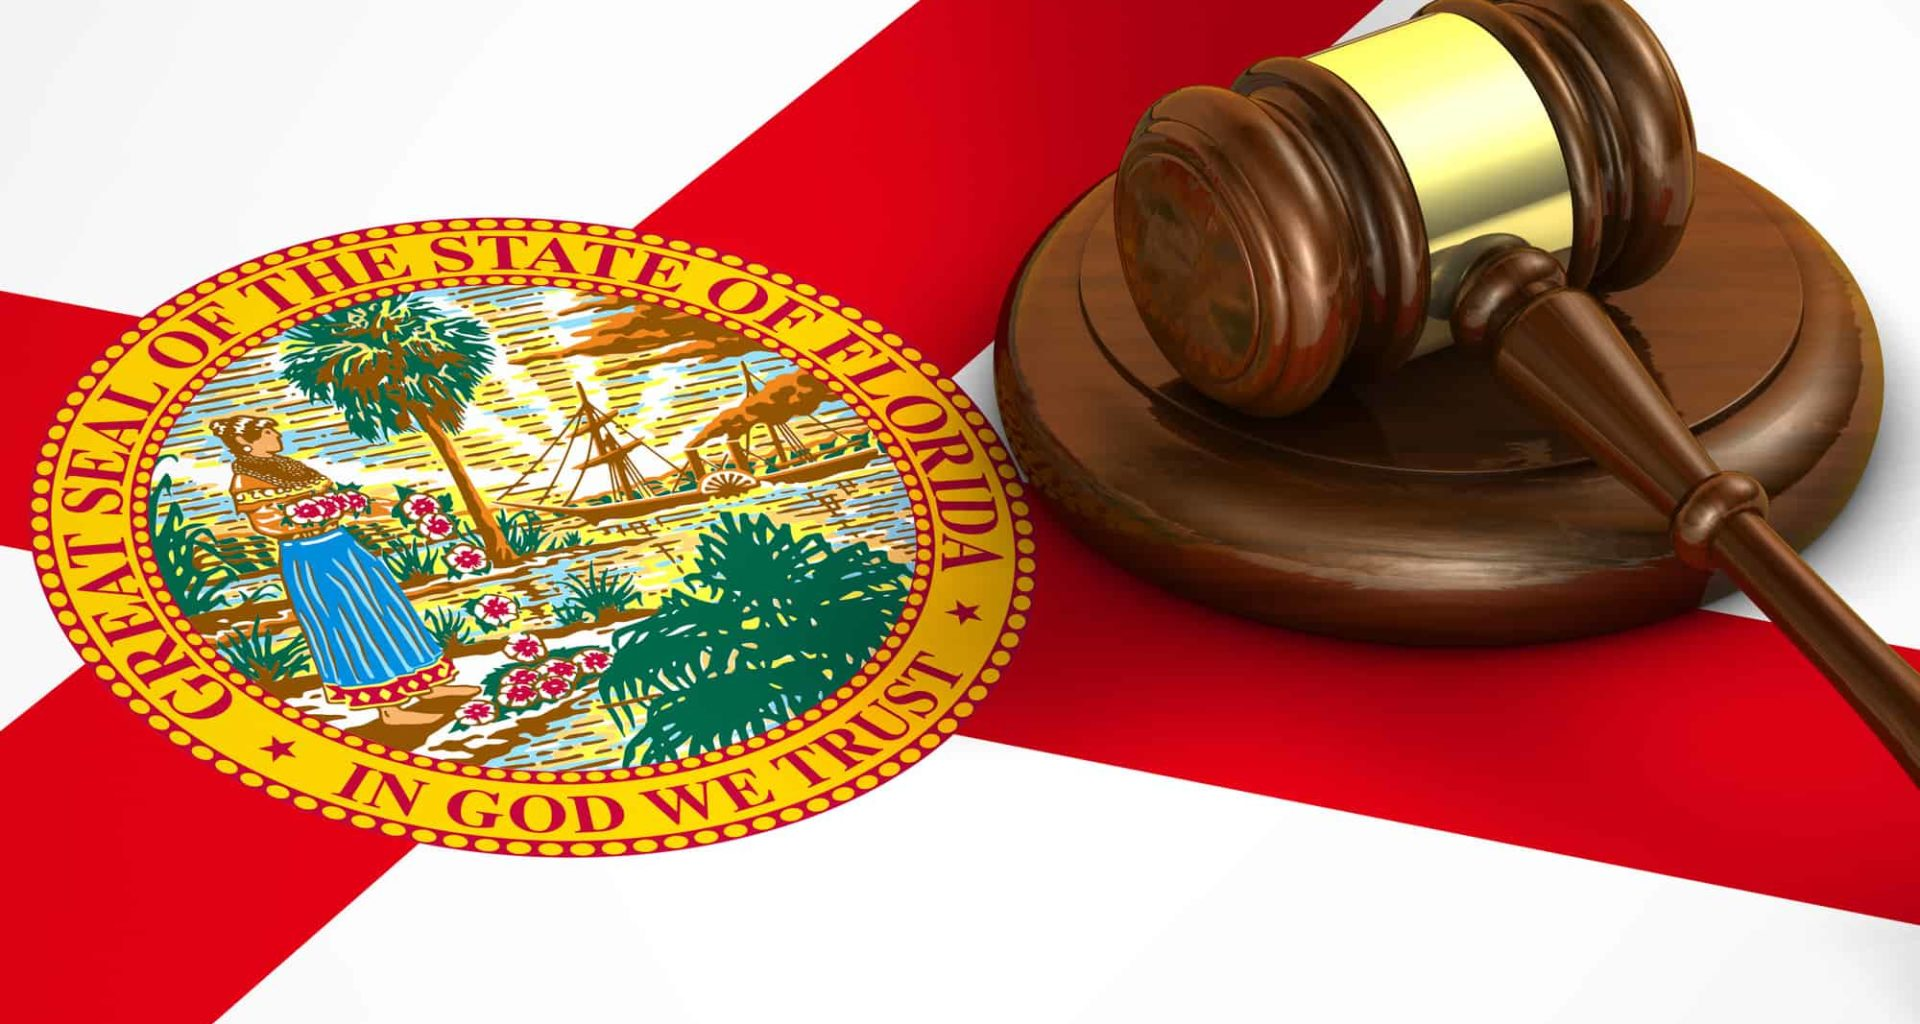 weird Florida laws